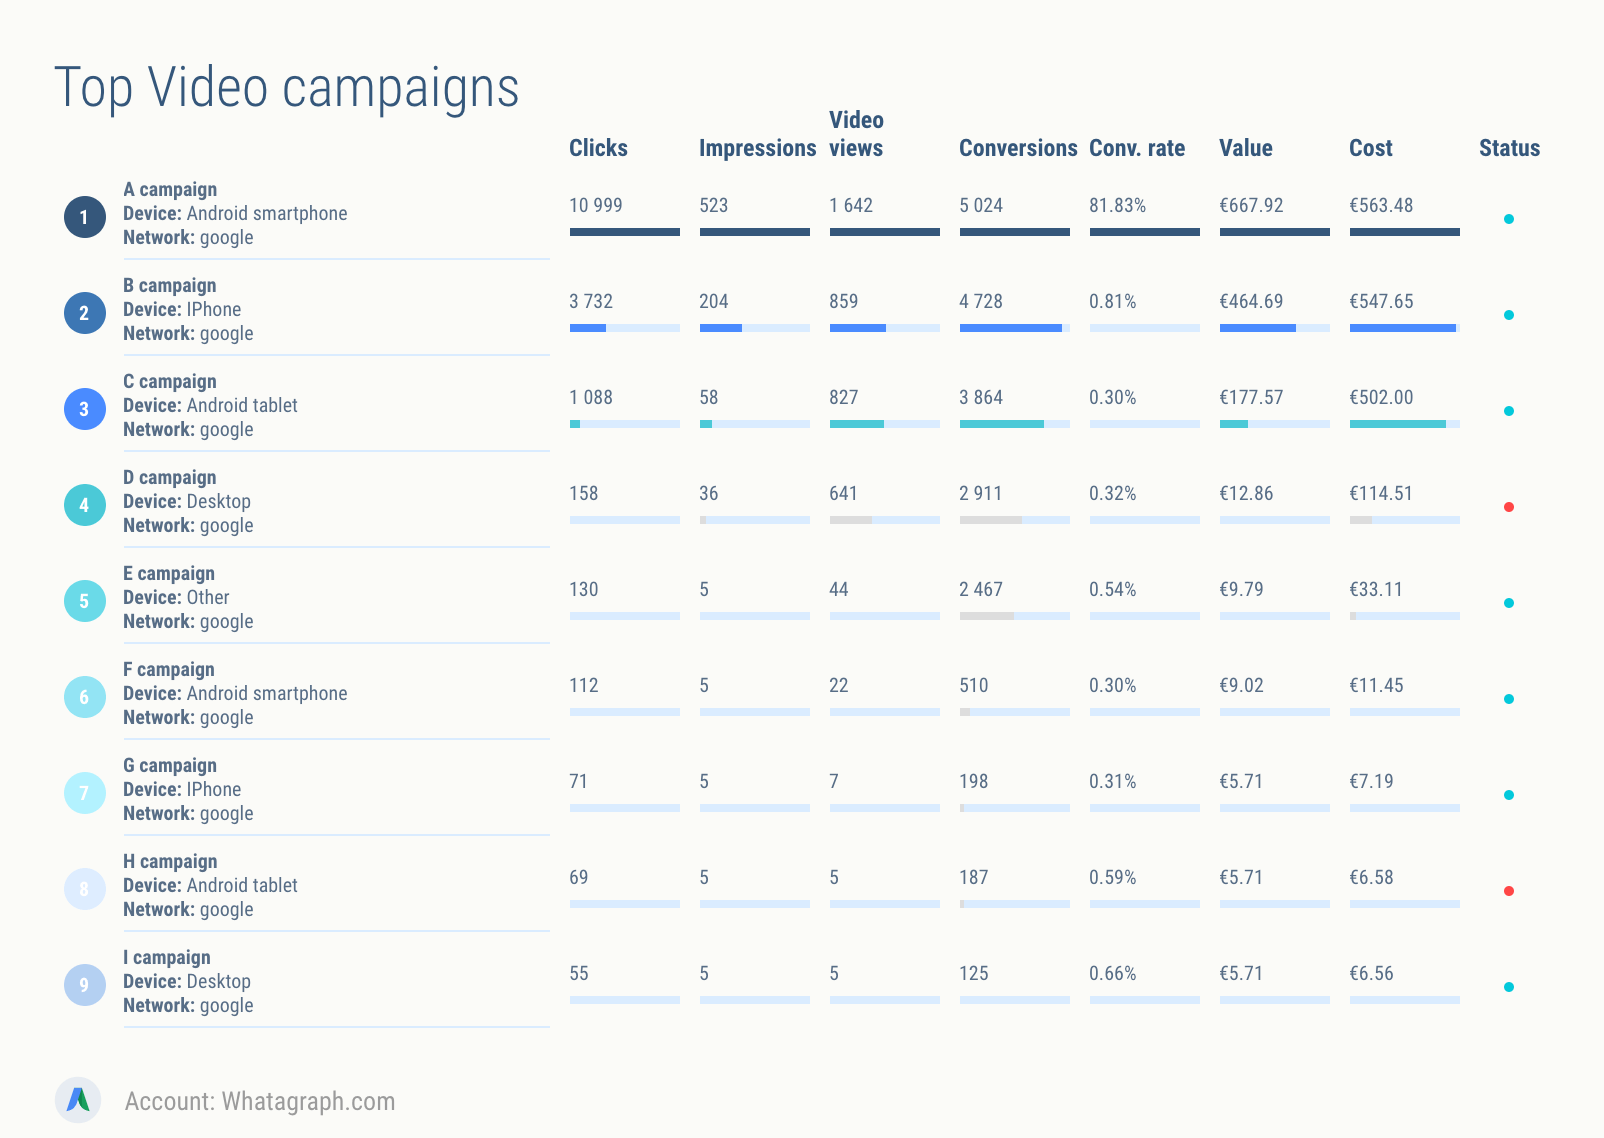 What are my top performing AdWords video campaigns